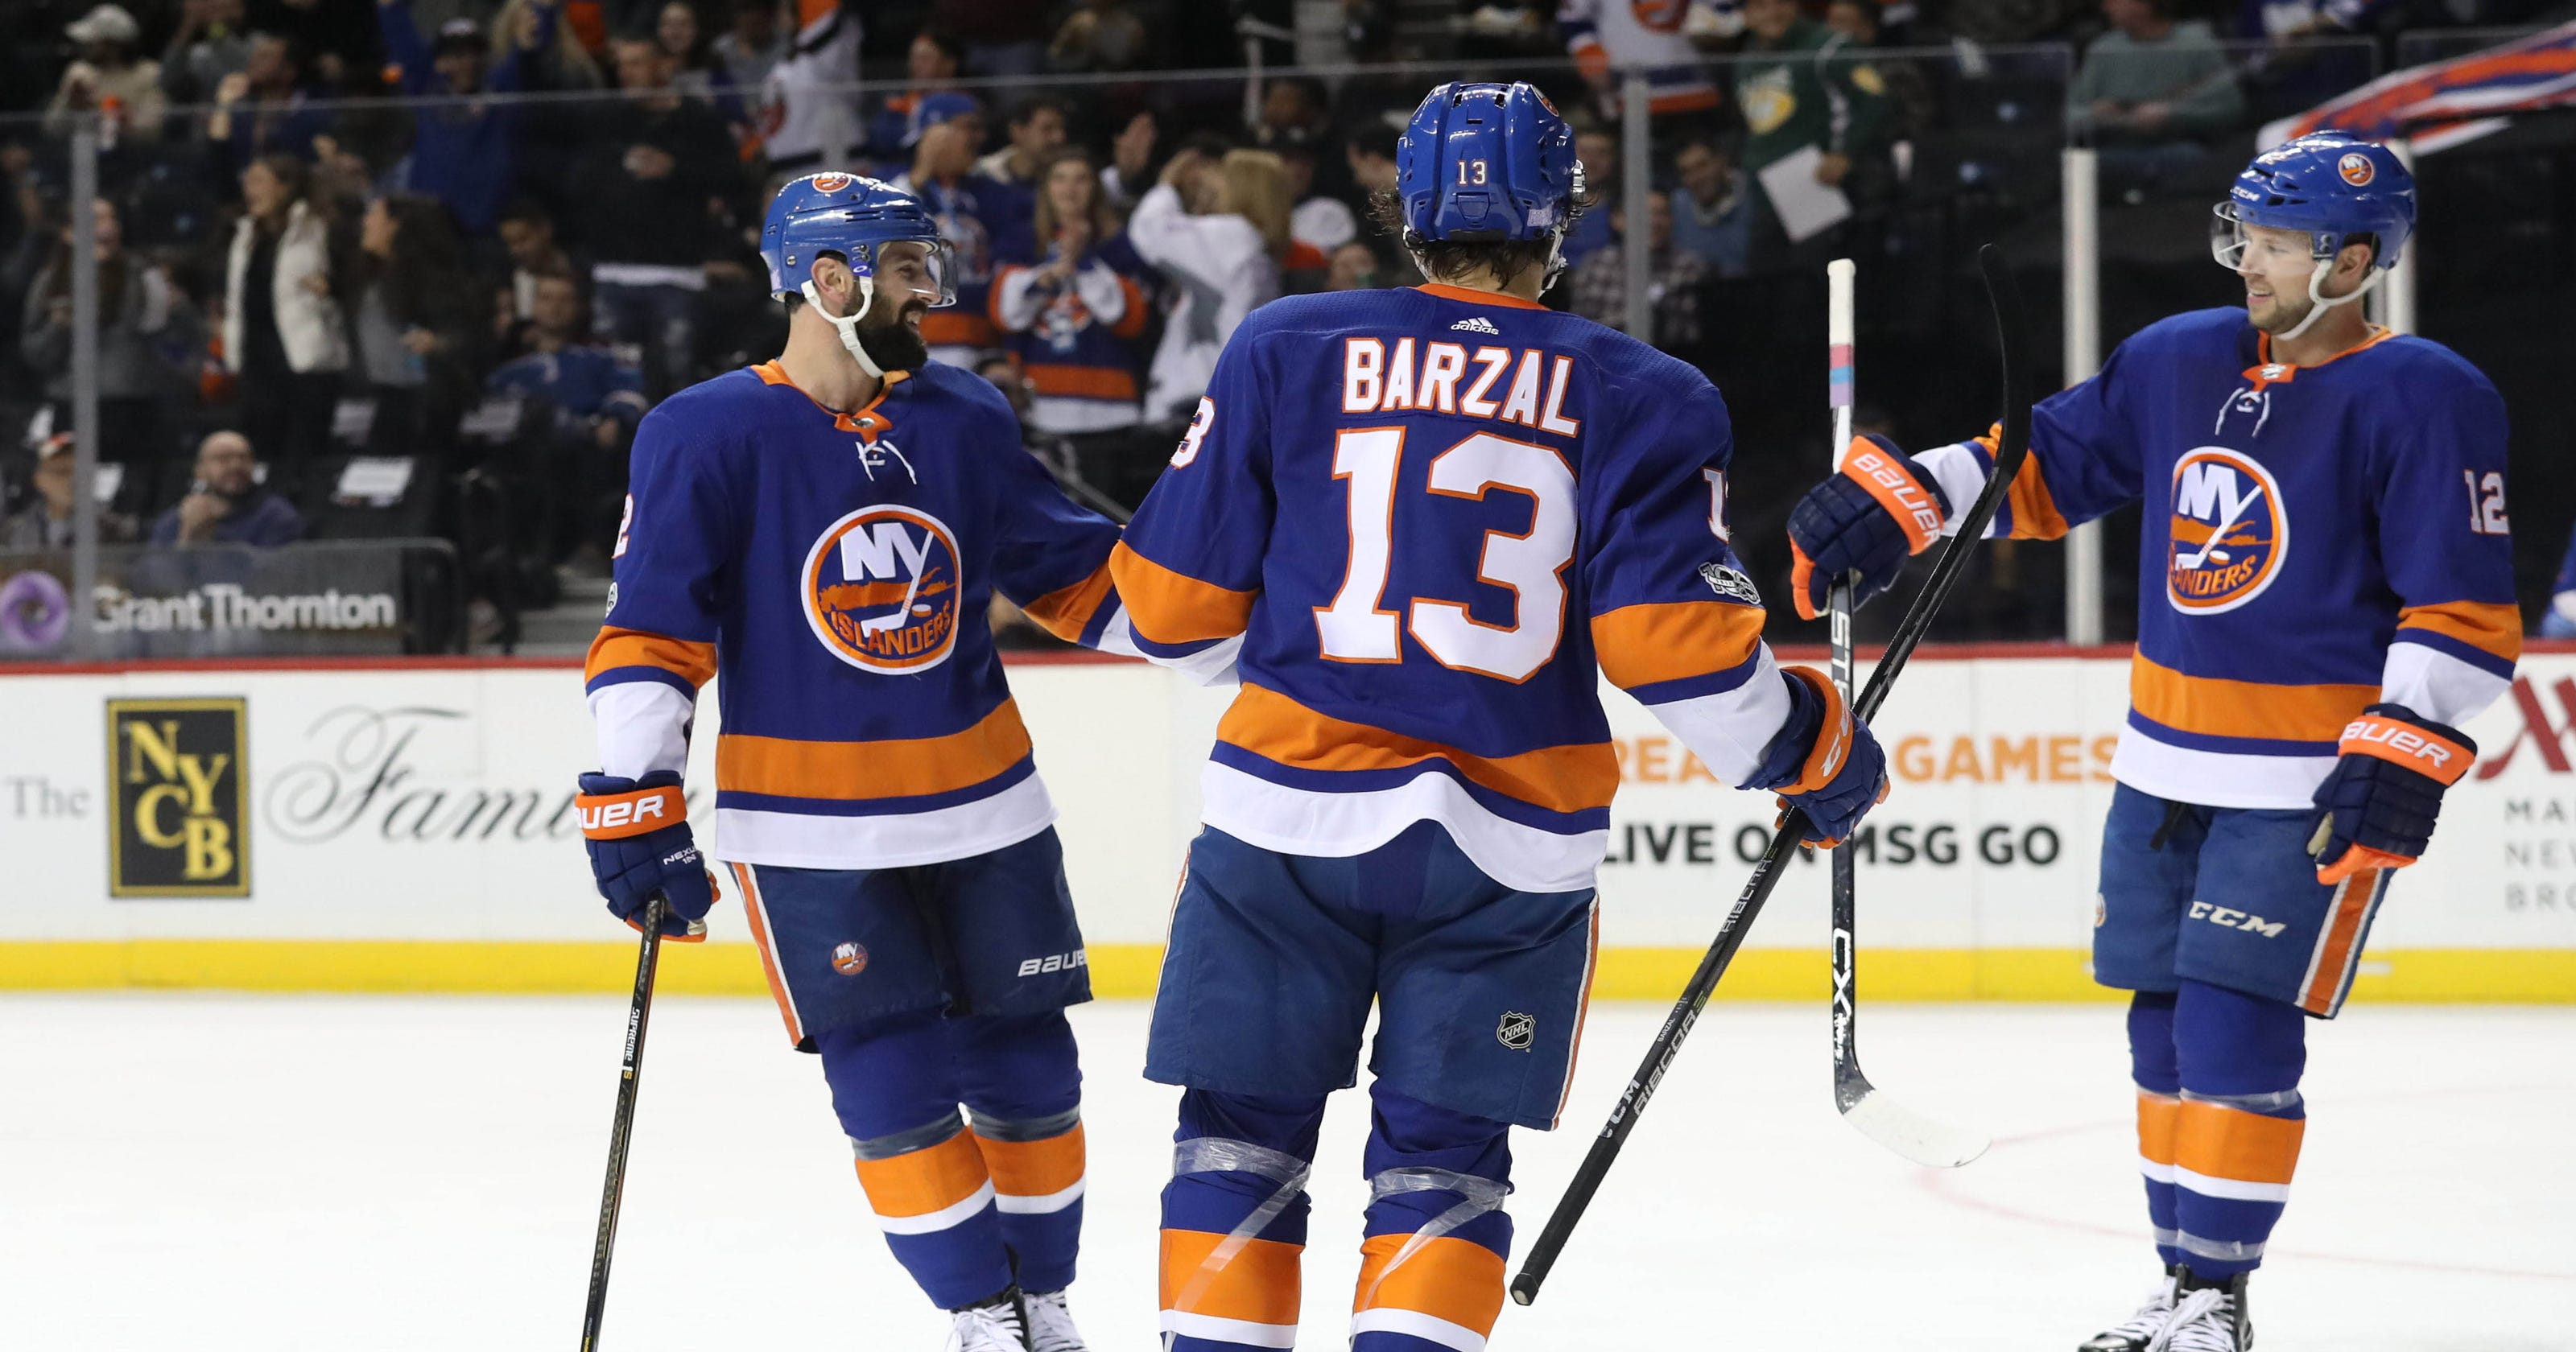 Mathew Barzal sets Islanders rookie assist record in win over Avalanche 9555a16f0